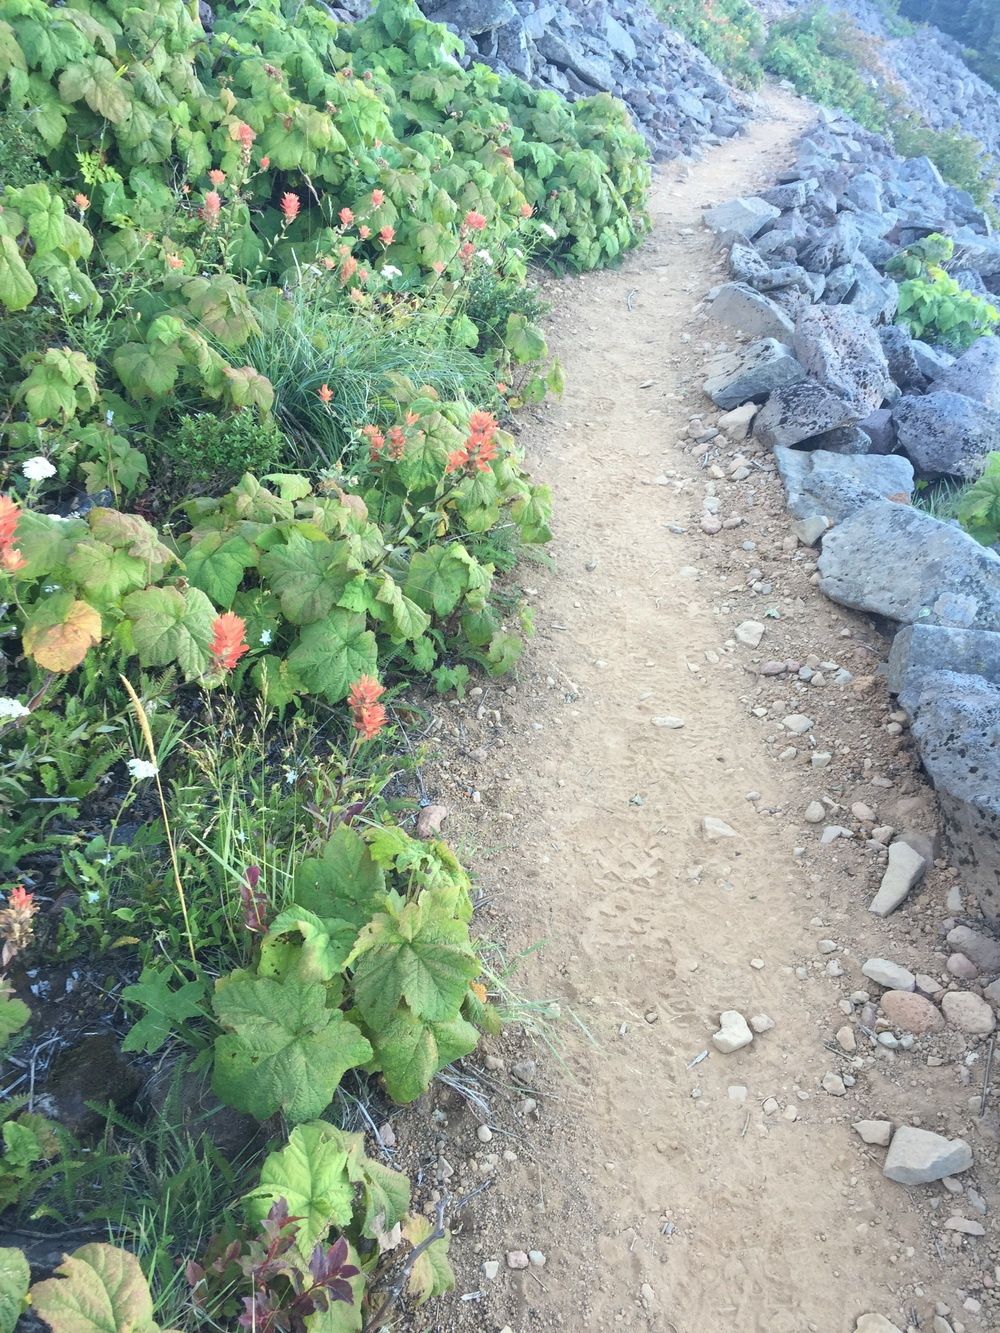 Nice, even trail tread through a rocky slope covered in thimbleberries